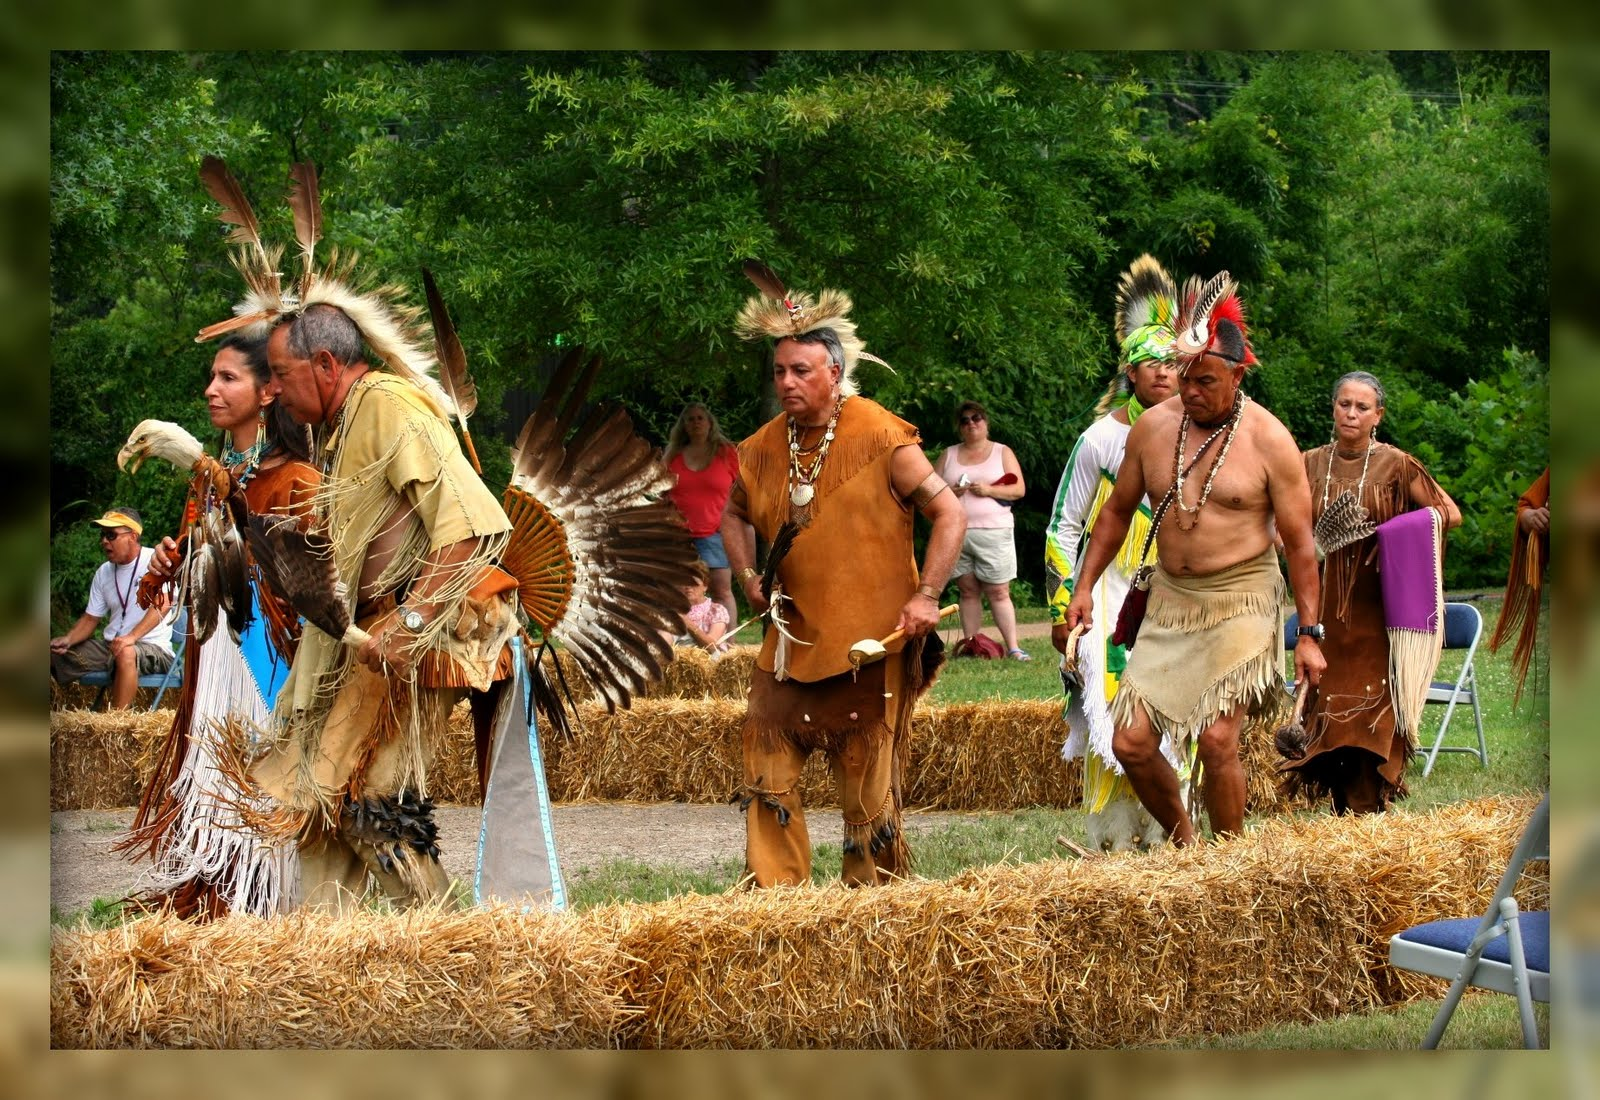 jamestown hindu singles Spring 1608 - pocahontas travels to jamestown as part of a delegation charged  powhatan expresses contempt for dale and says a single marriage between his people.